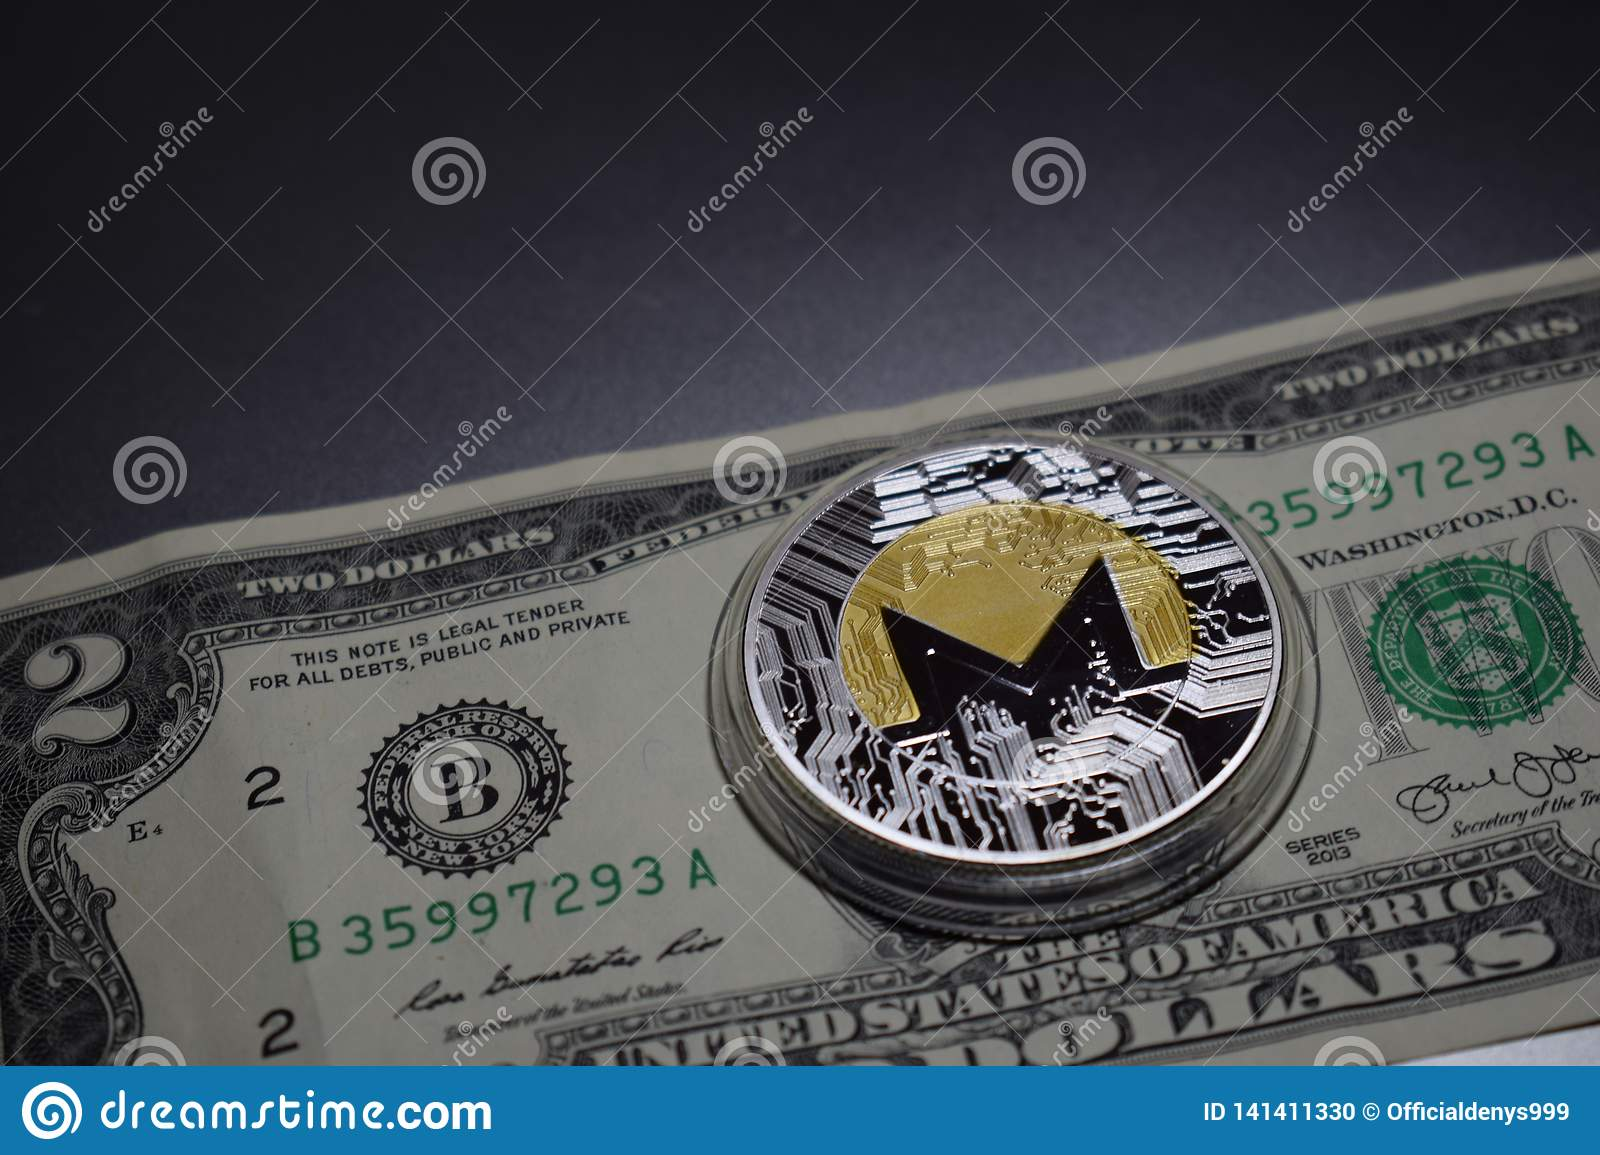 washington coin cryptocurrency